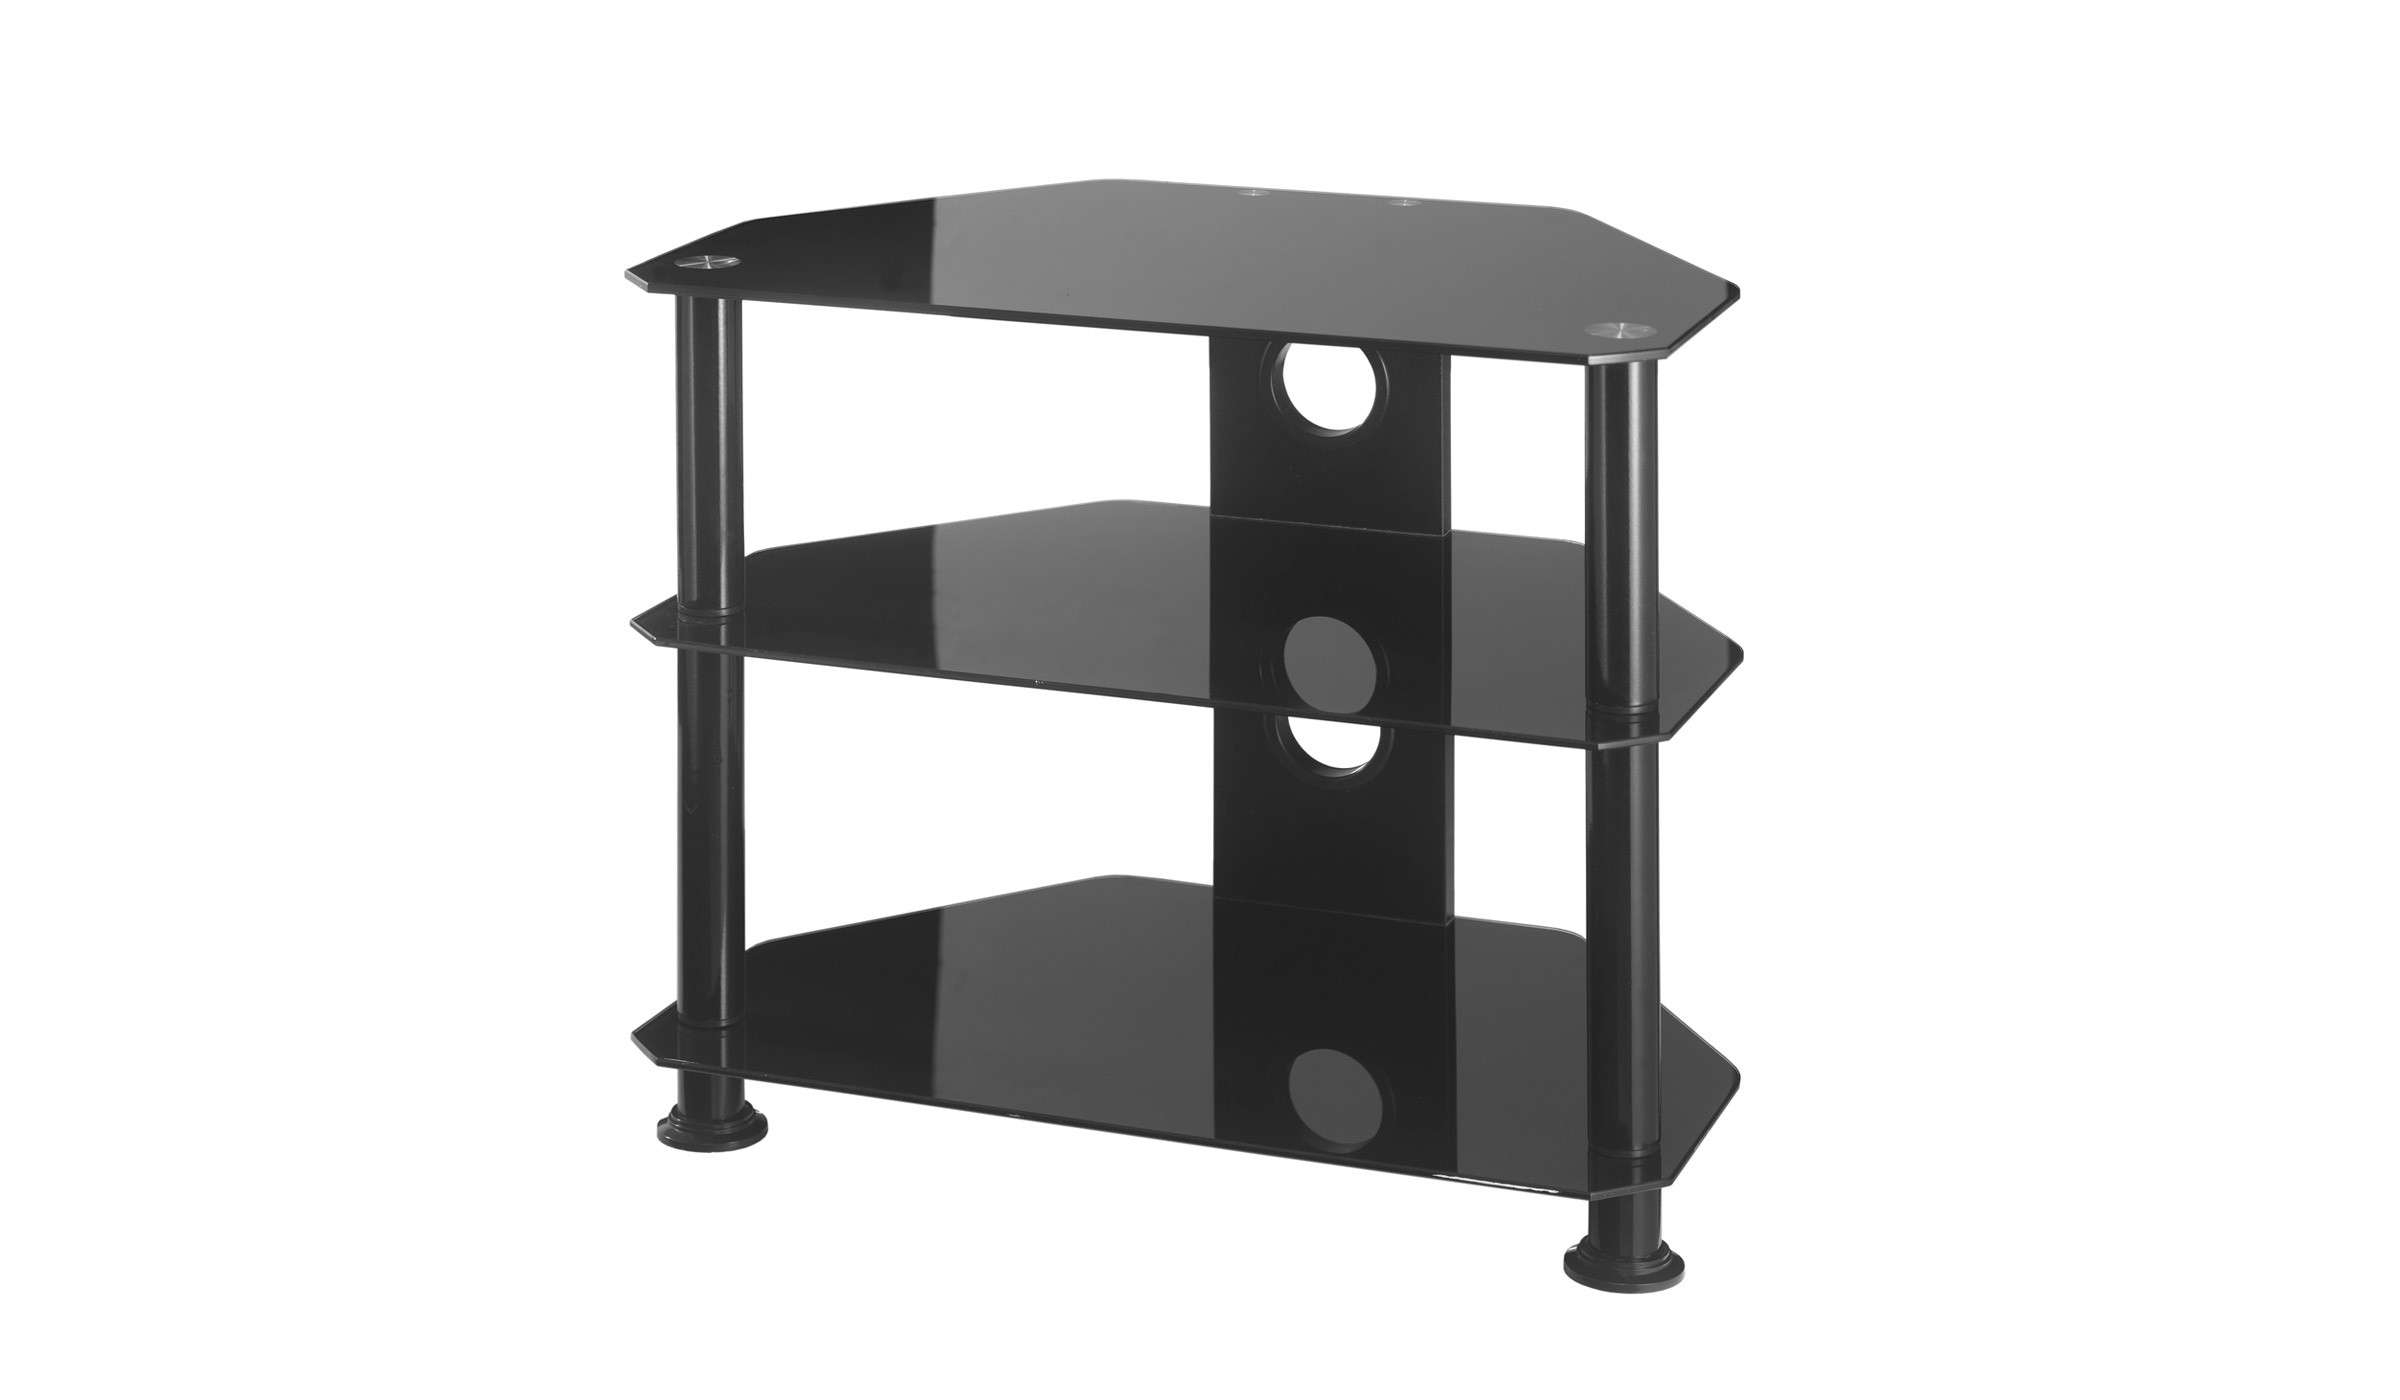 Small Glass Corner Tv Stand Up To 26 Inch Tv | Mmt Db600 In Small Tv Stands (View 8 of 15)